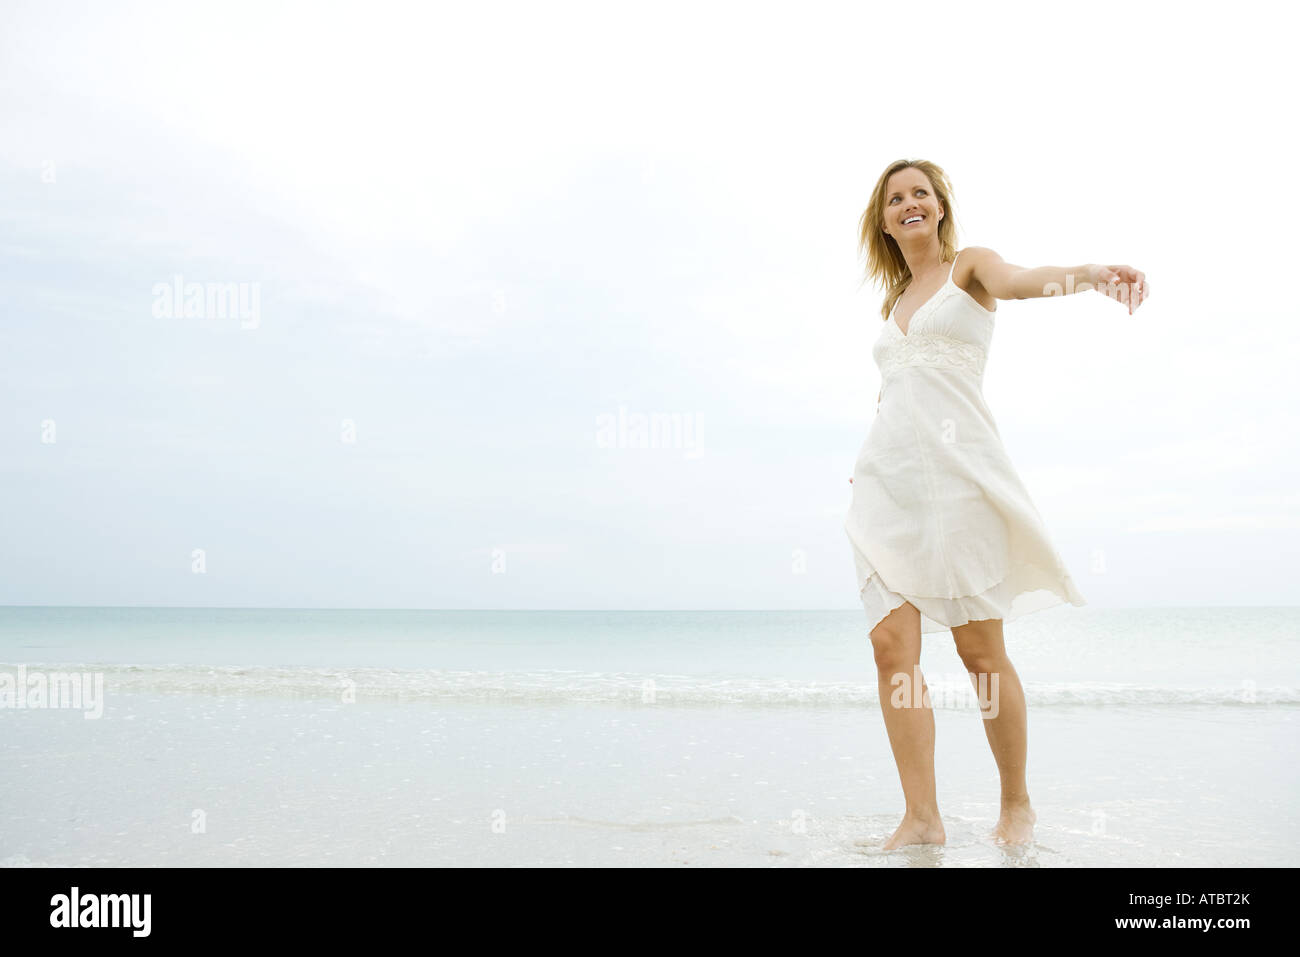 Young woman in sundress walking in surf, arms out, looking away - Stock Image